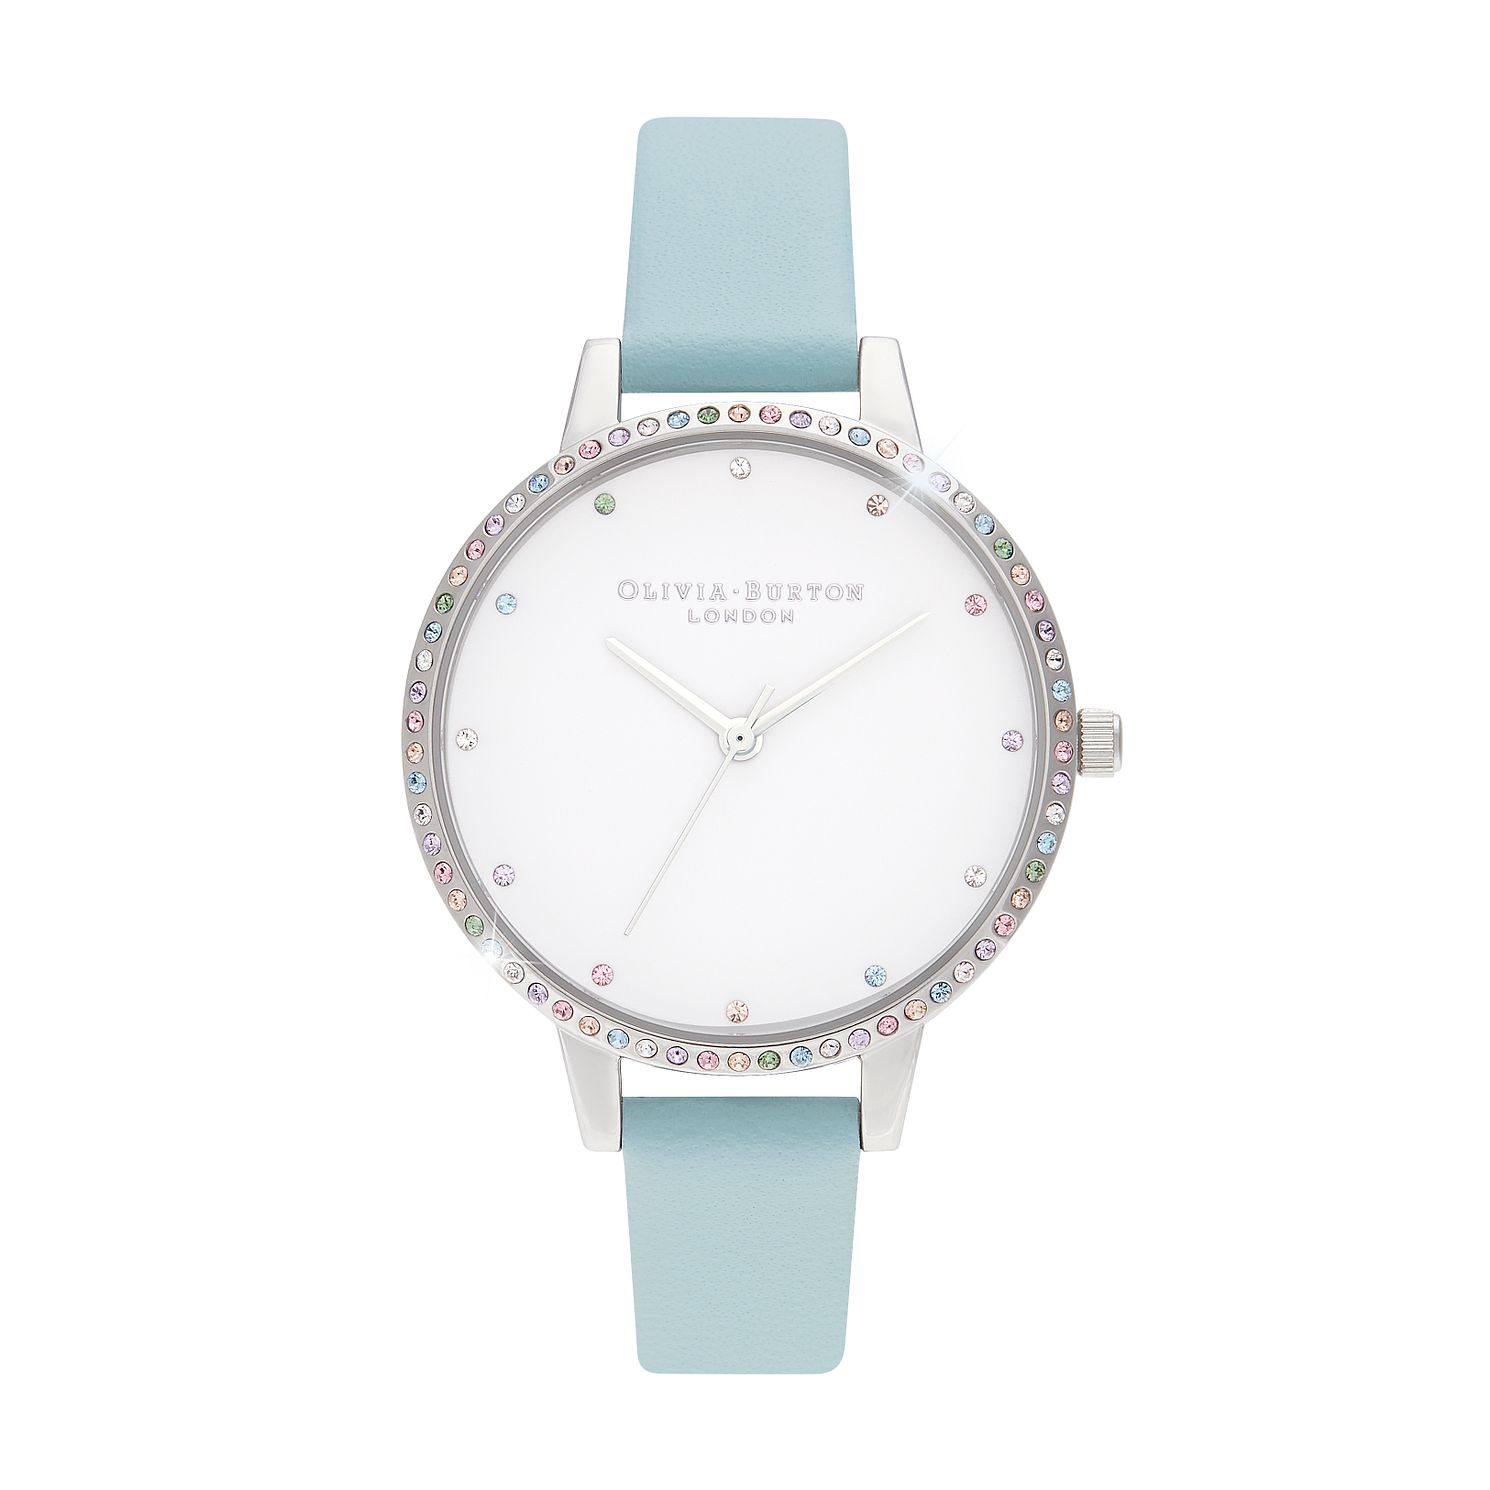 Olivia Burton Rainbow Bezel Turquoise Leather Strap Watch - Product number 8208956